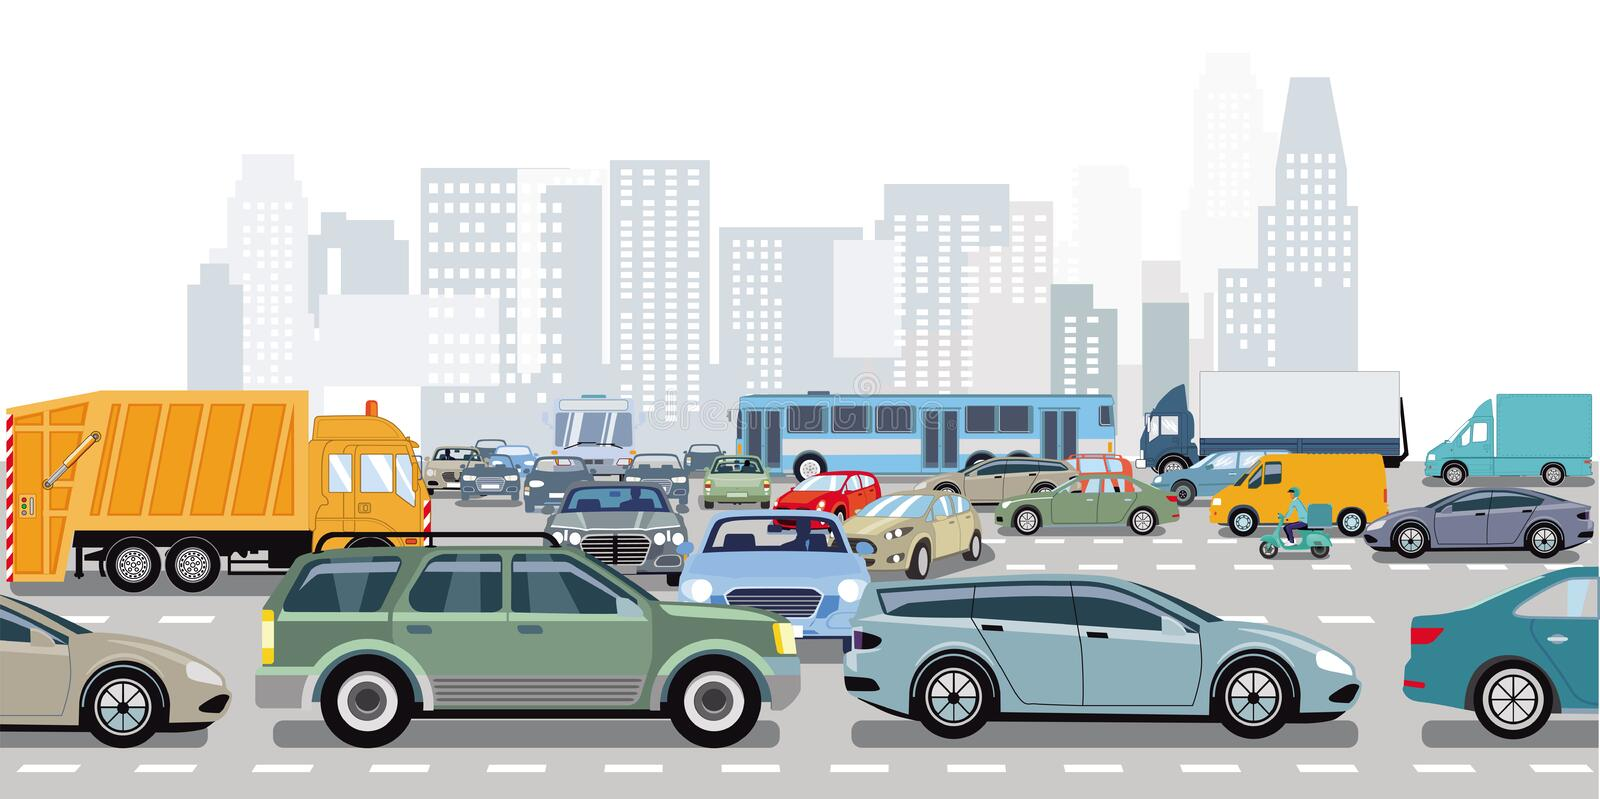 Cars in traffic jam at the intersection. Illustration vector illustration